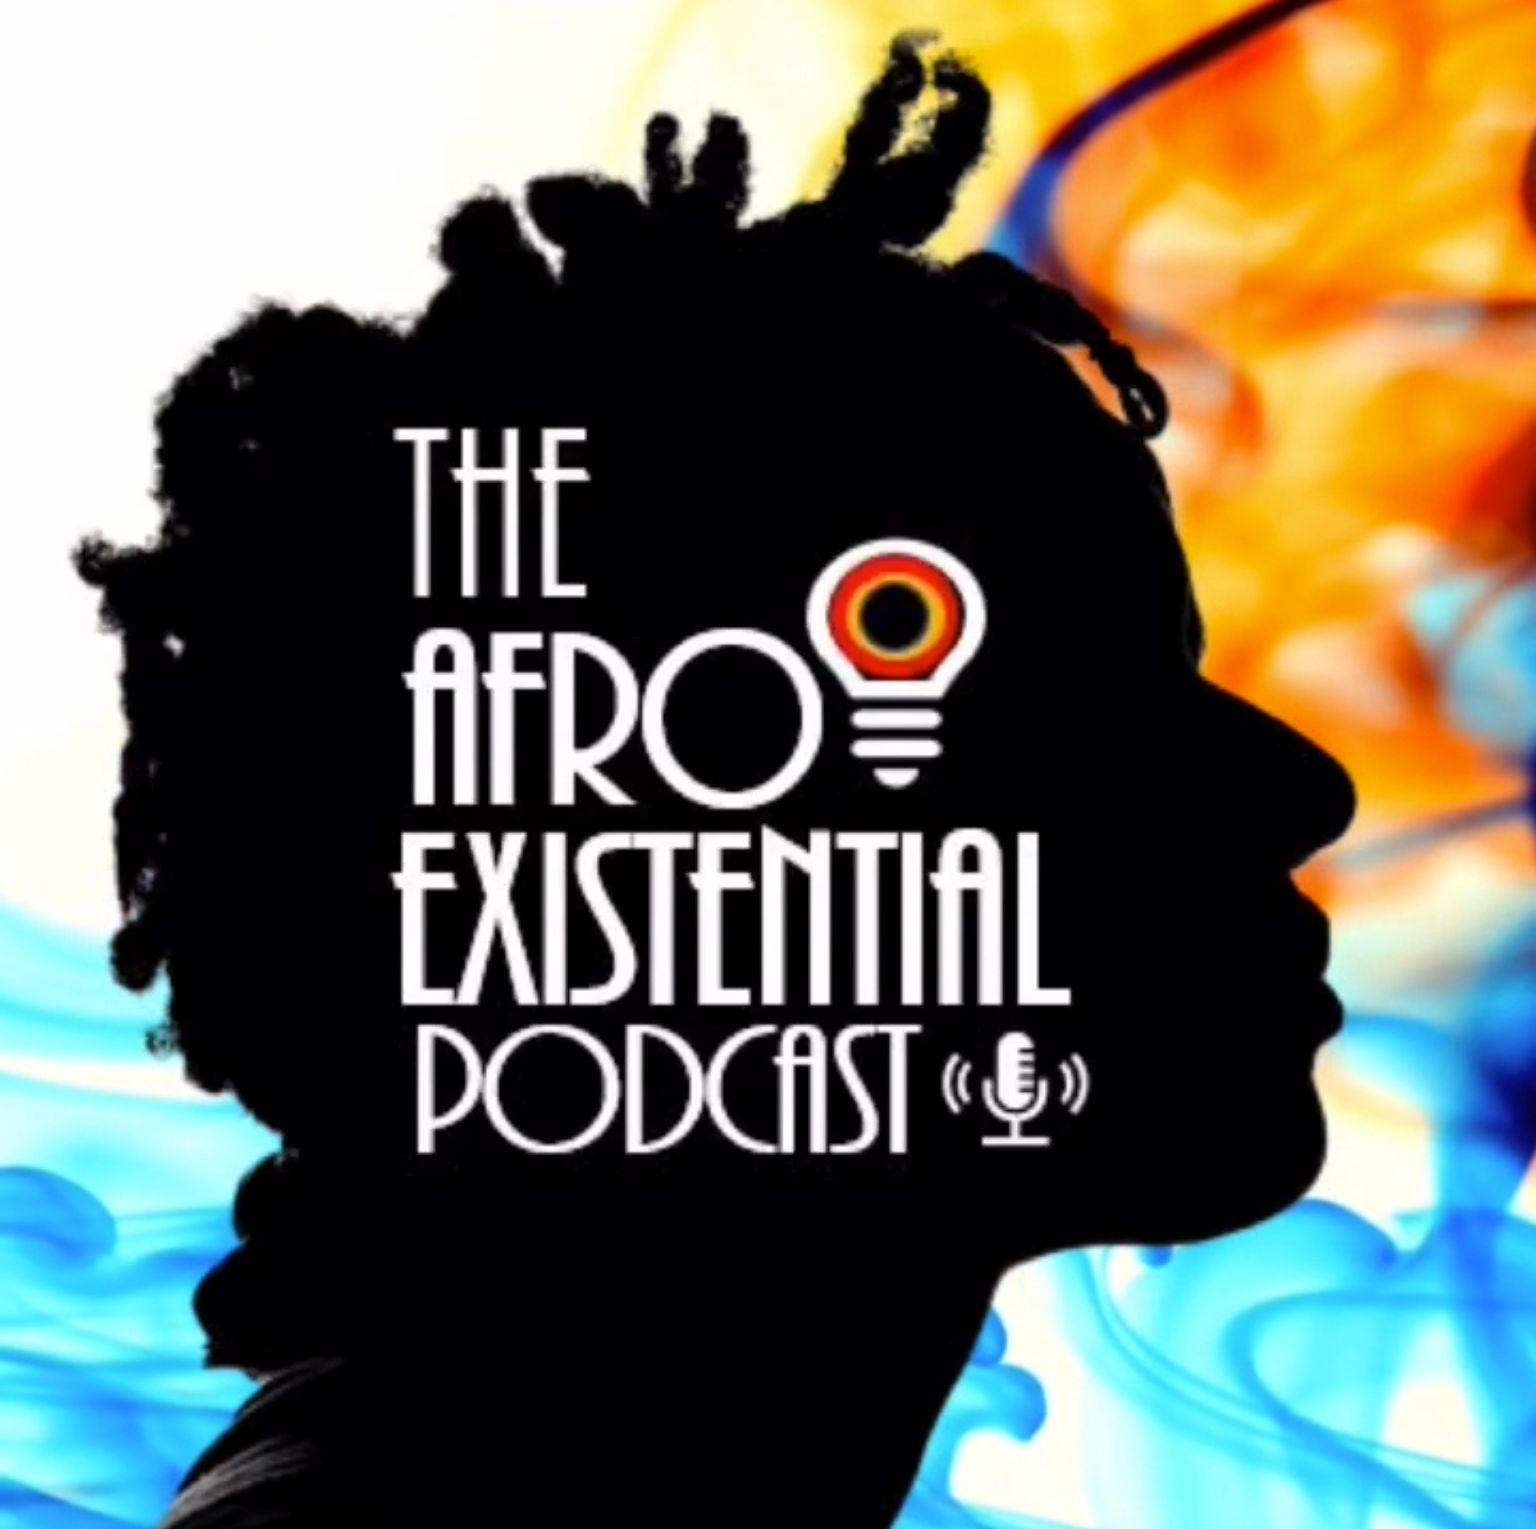 The Afro-Existential Podcast   Episode 2